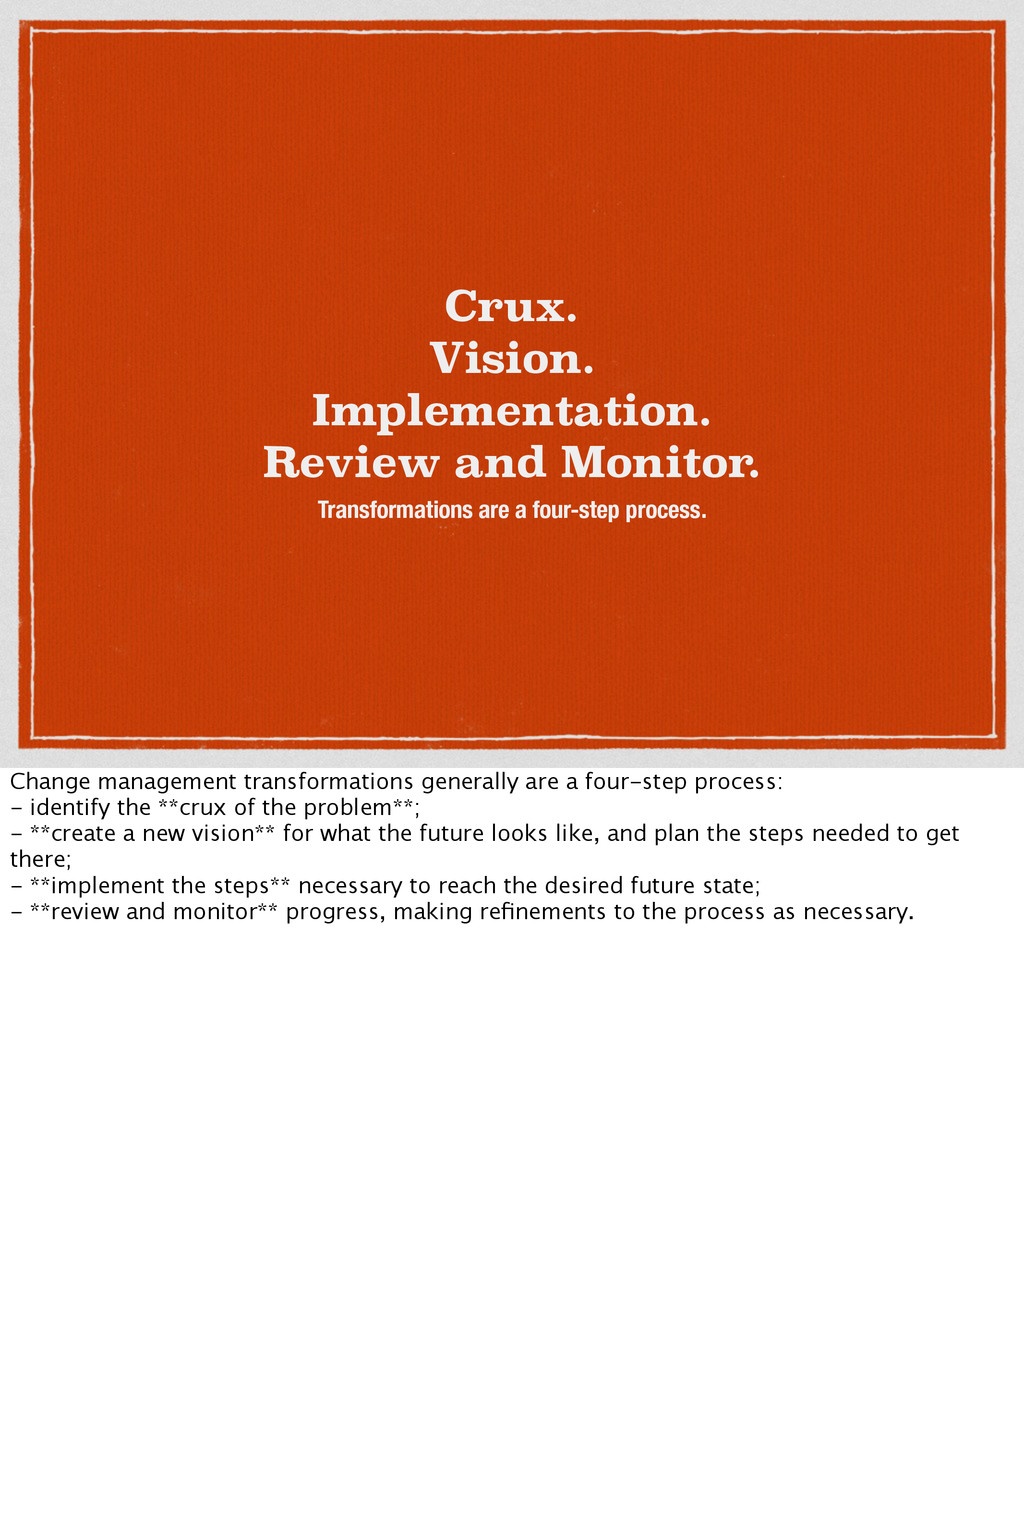 Crux. Vision. Implementation. Review and Monito...